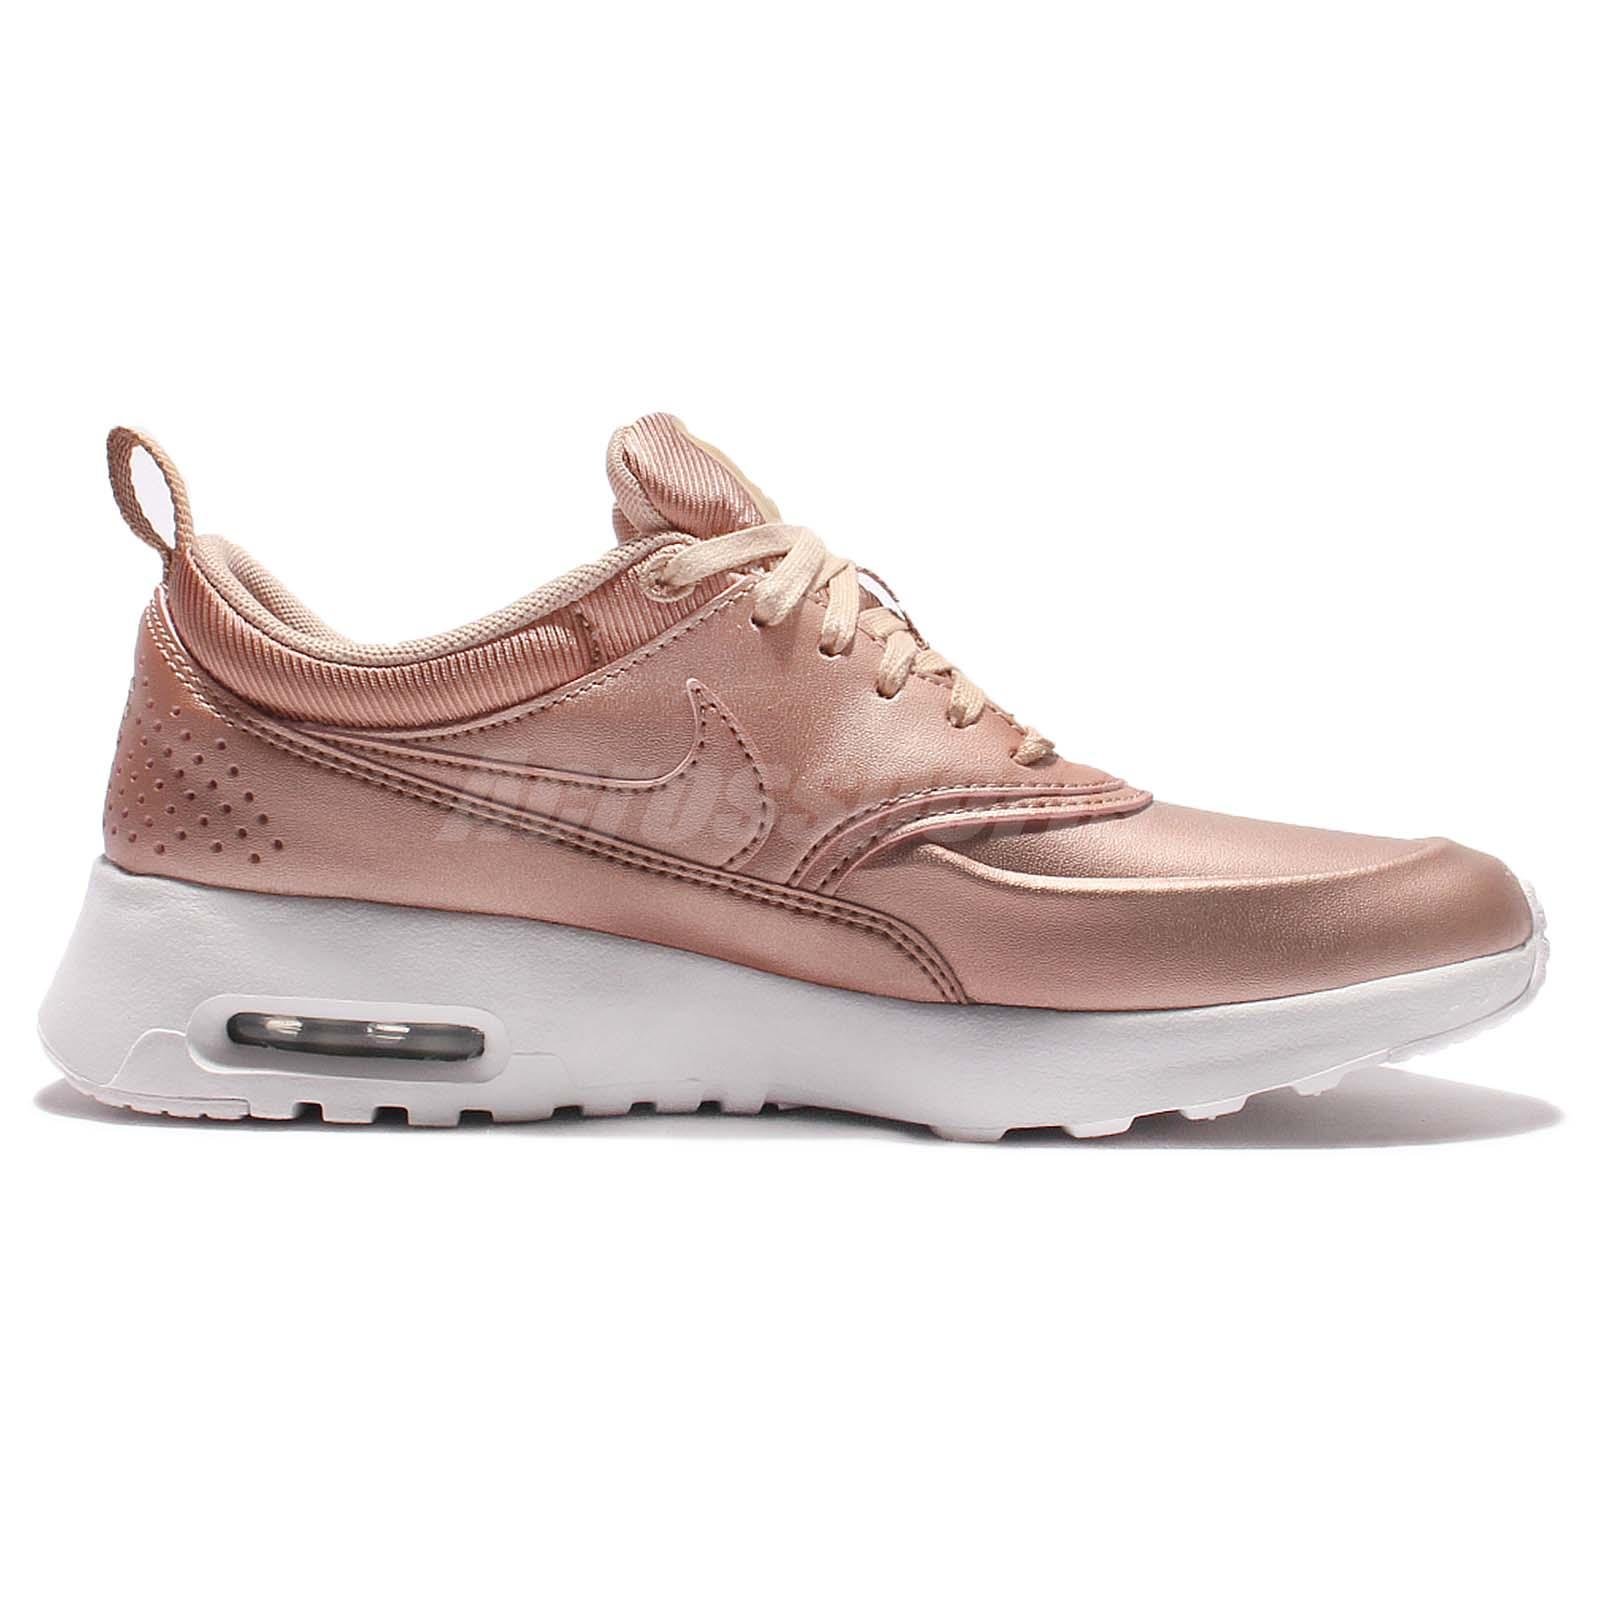 wmns nike air max thea se metallic red bronze womens. Black Bedroom Furniture Sets. Home Design Ideas